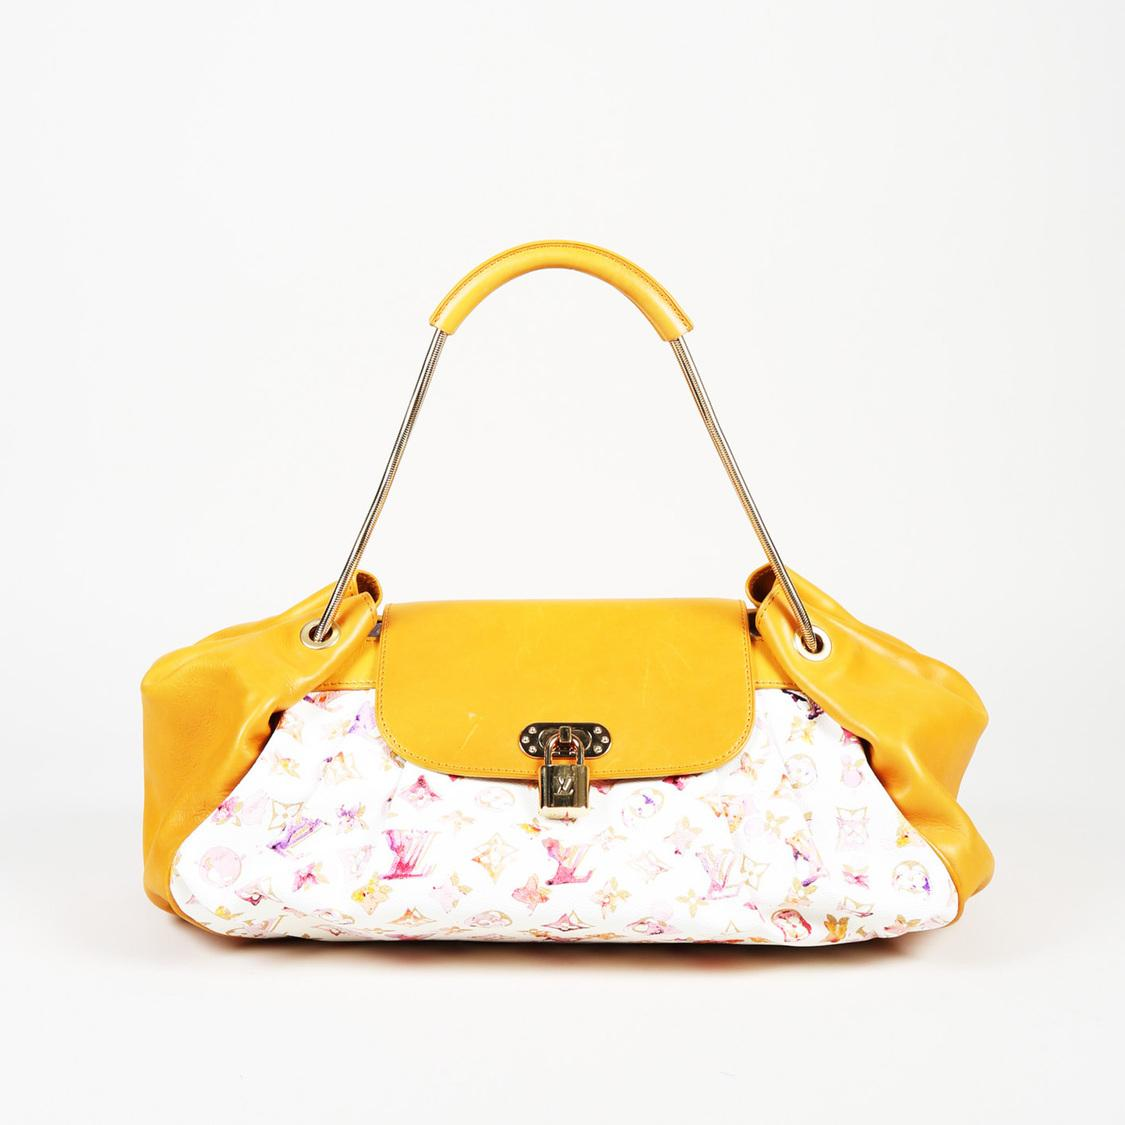 29a2ffe75748 Louis Vuitton. Women s Yellow Limited Edition Monogram Watercolor